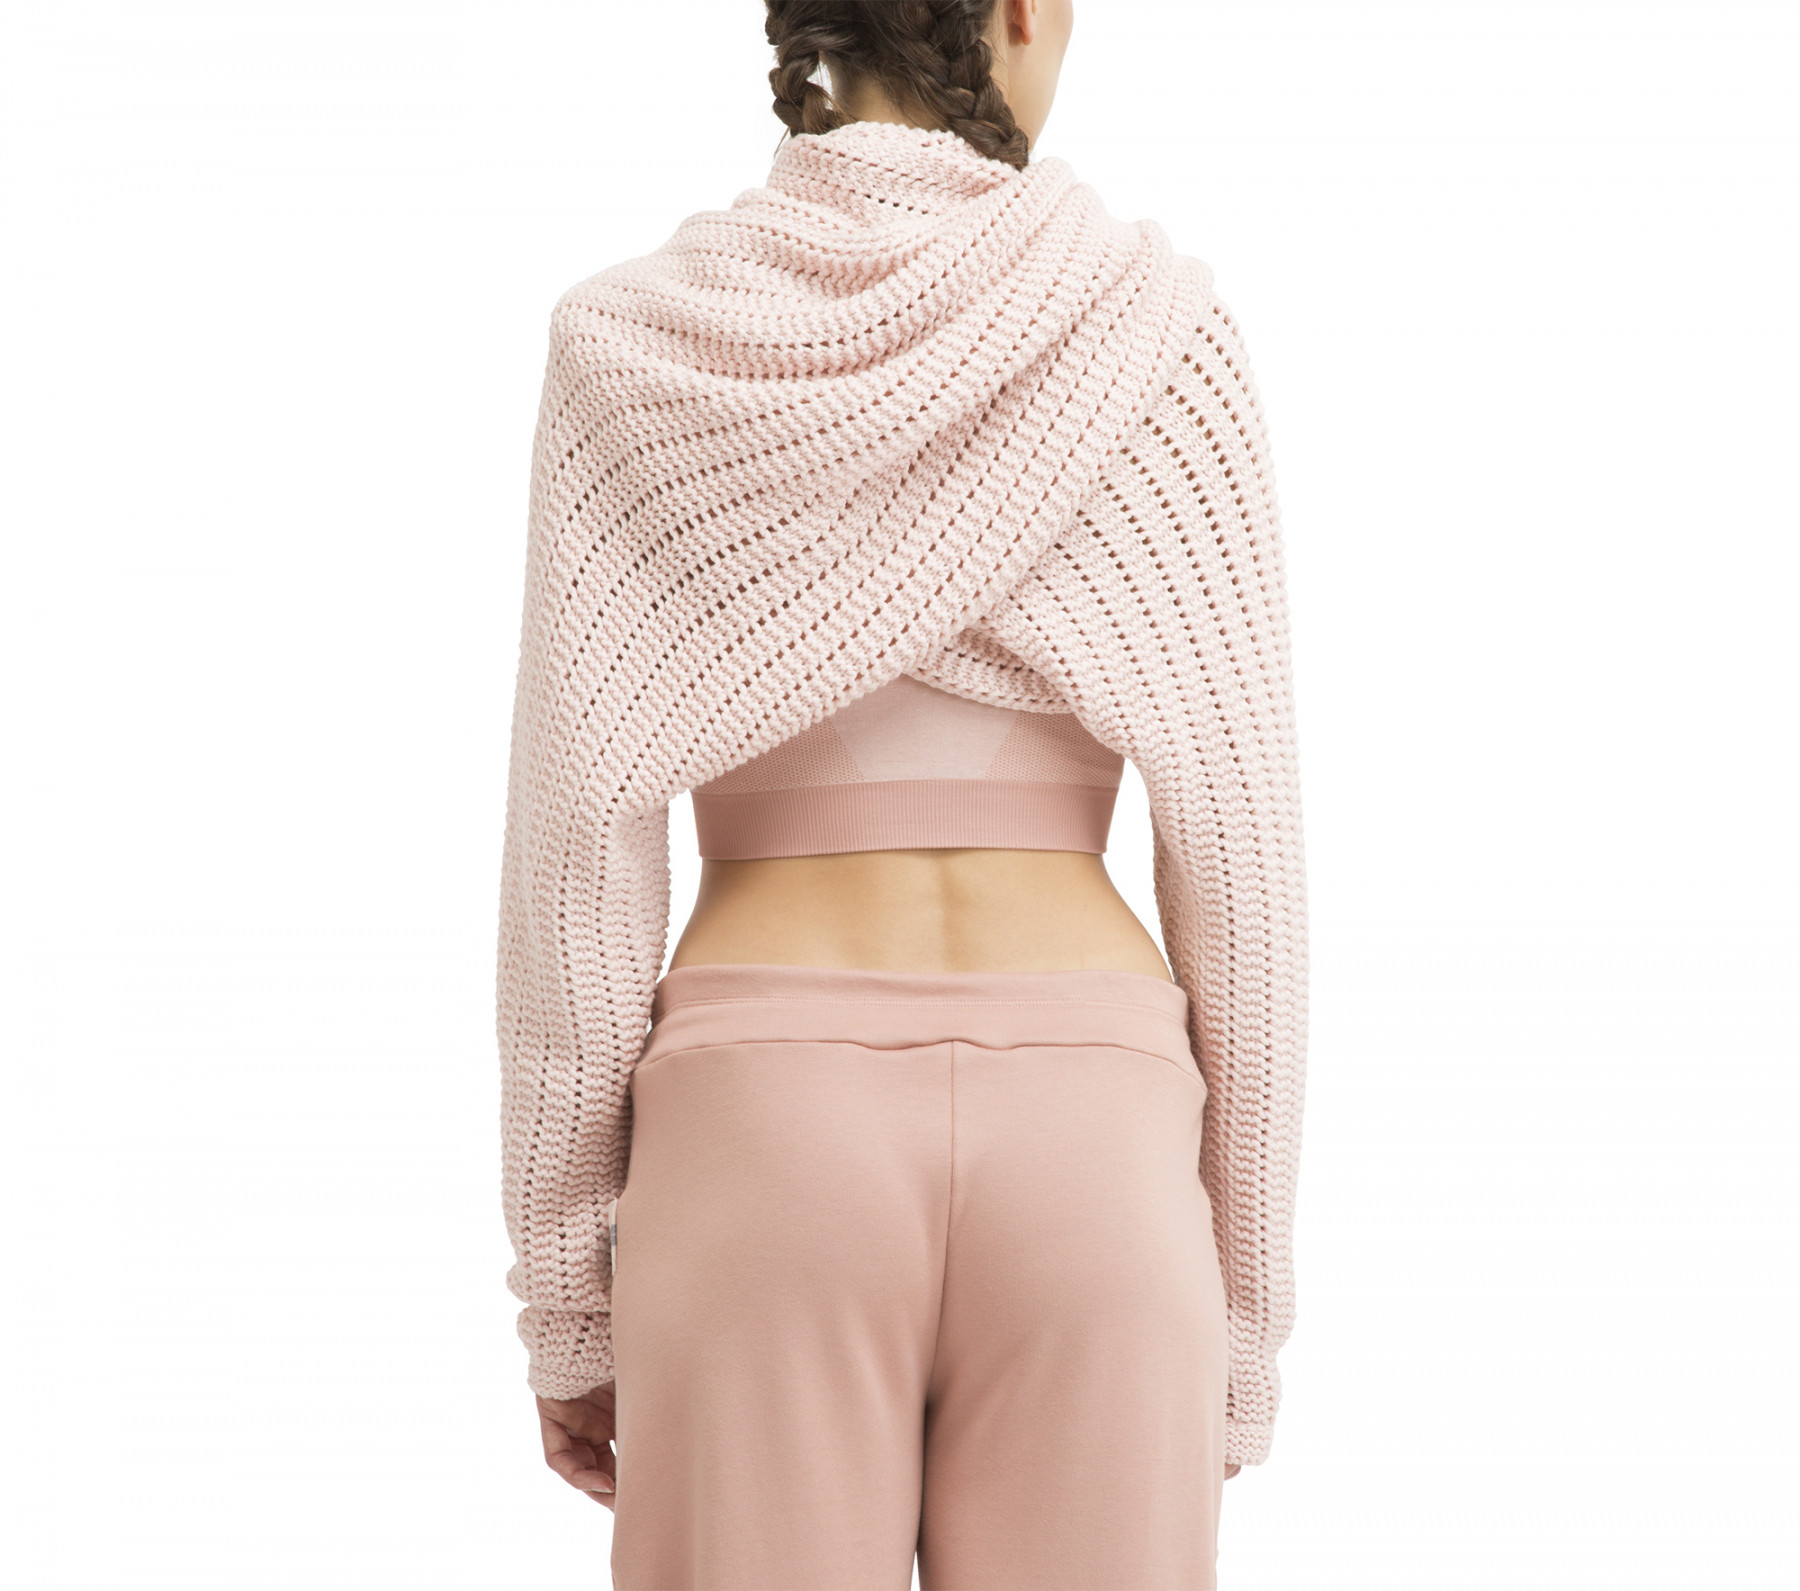 3D knitted shoulder warmer